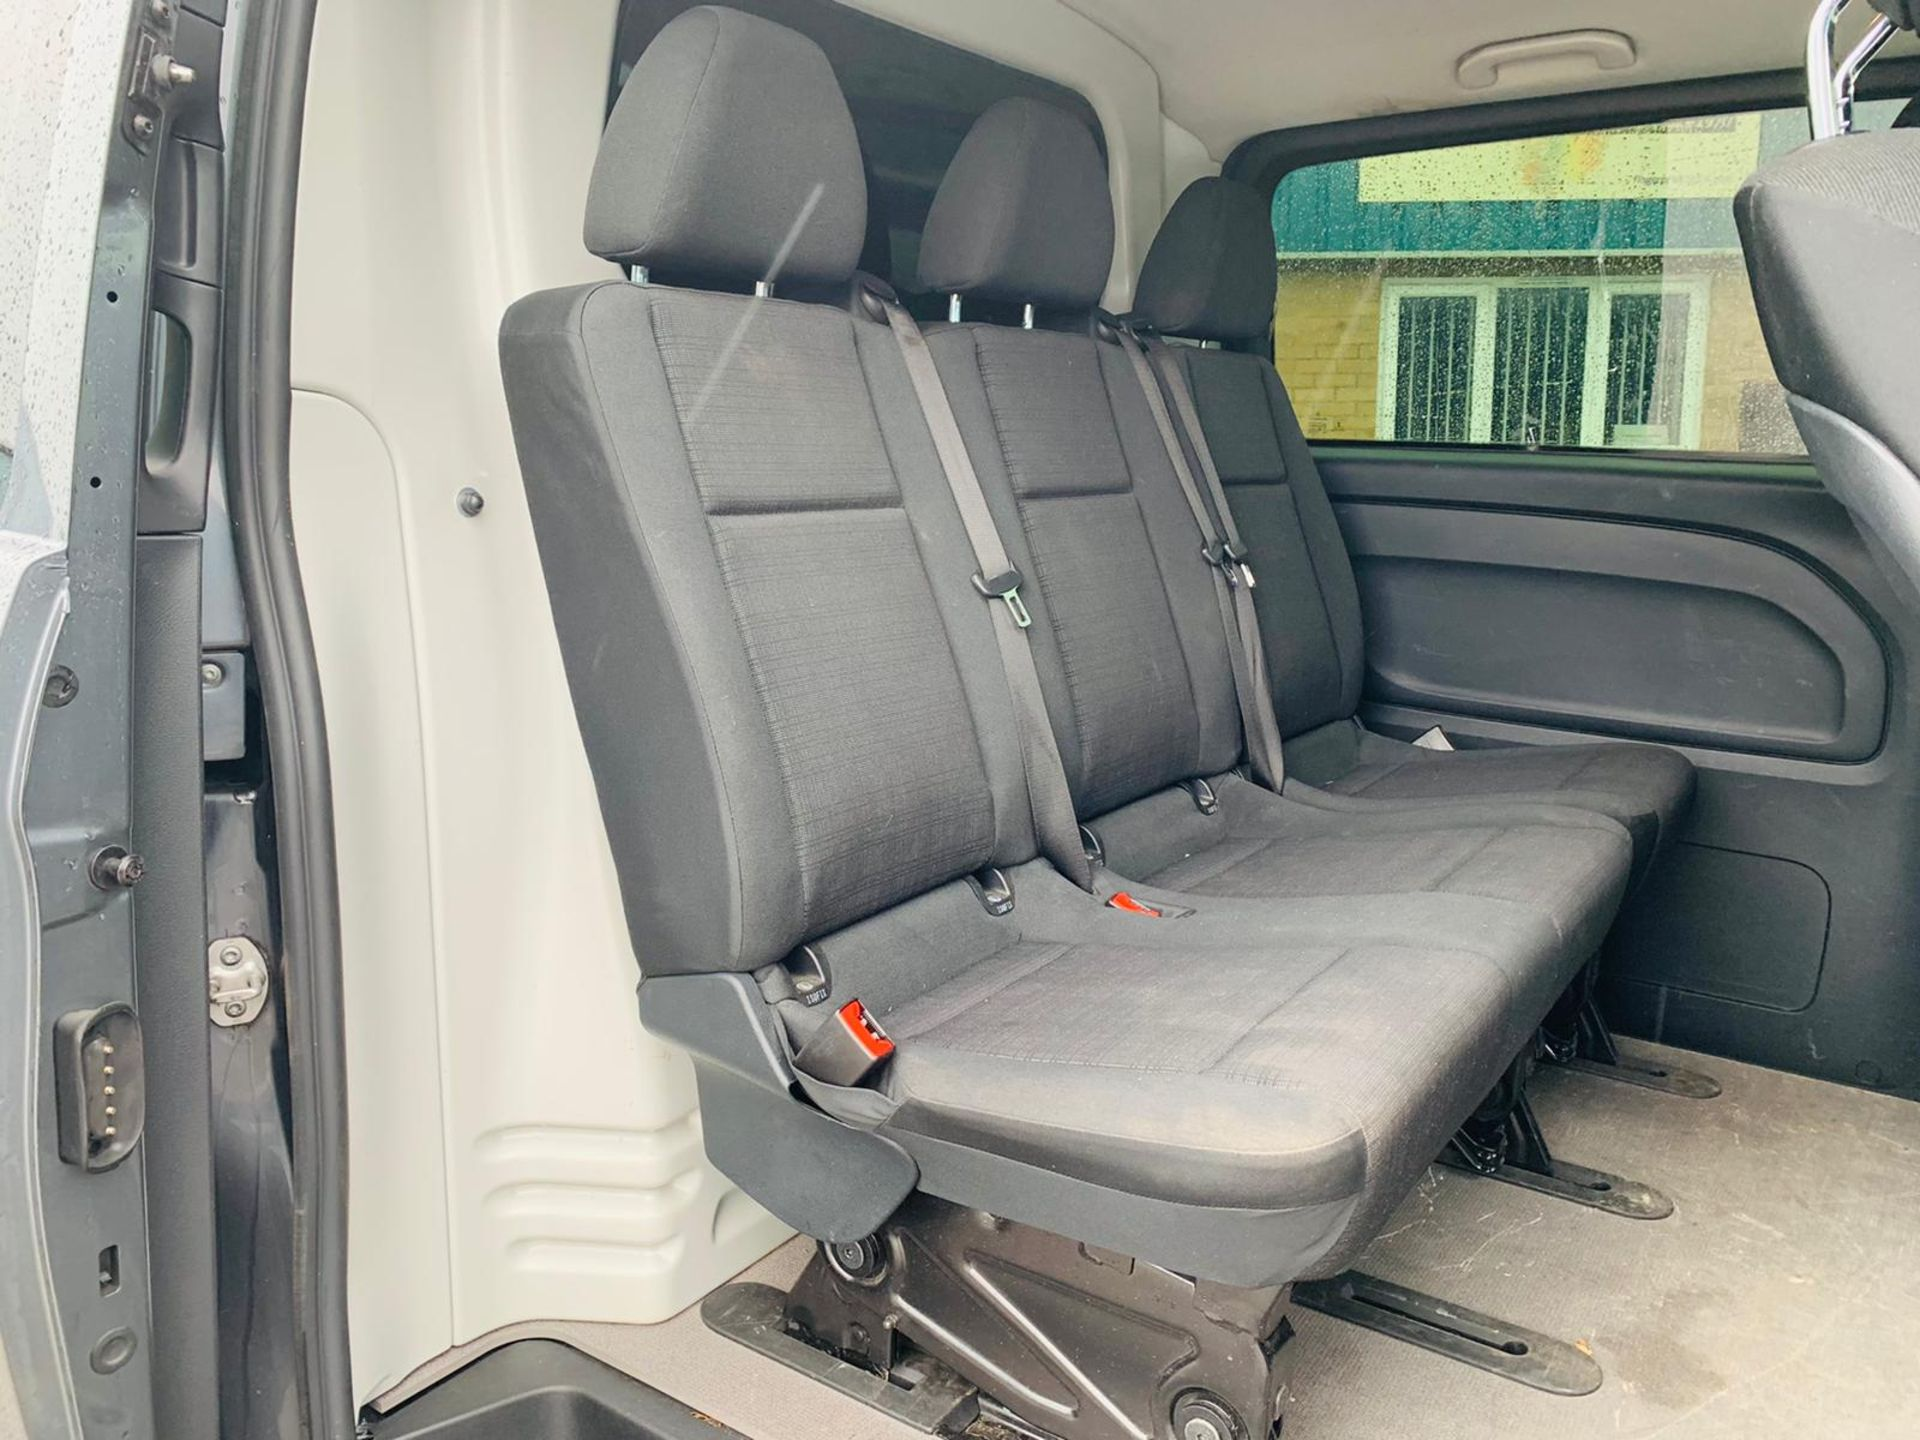 Mercedes Vito 114 Bluetec Dualiner/Crew Van - Auto - Air Con - 2018 Model- 1 Owner From New - Image 14 of 30